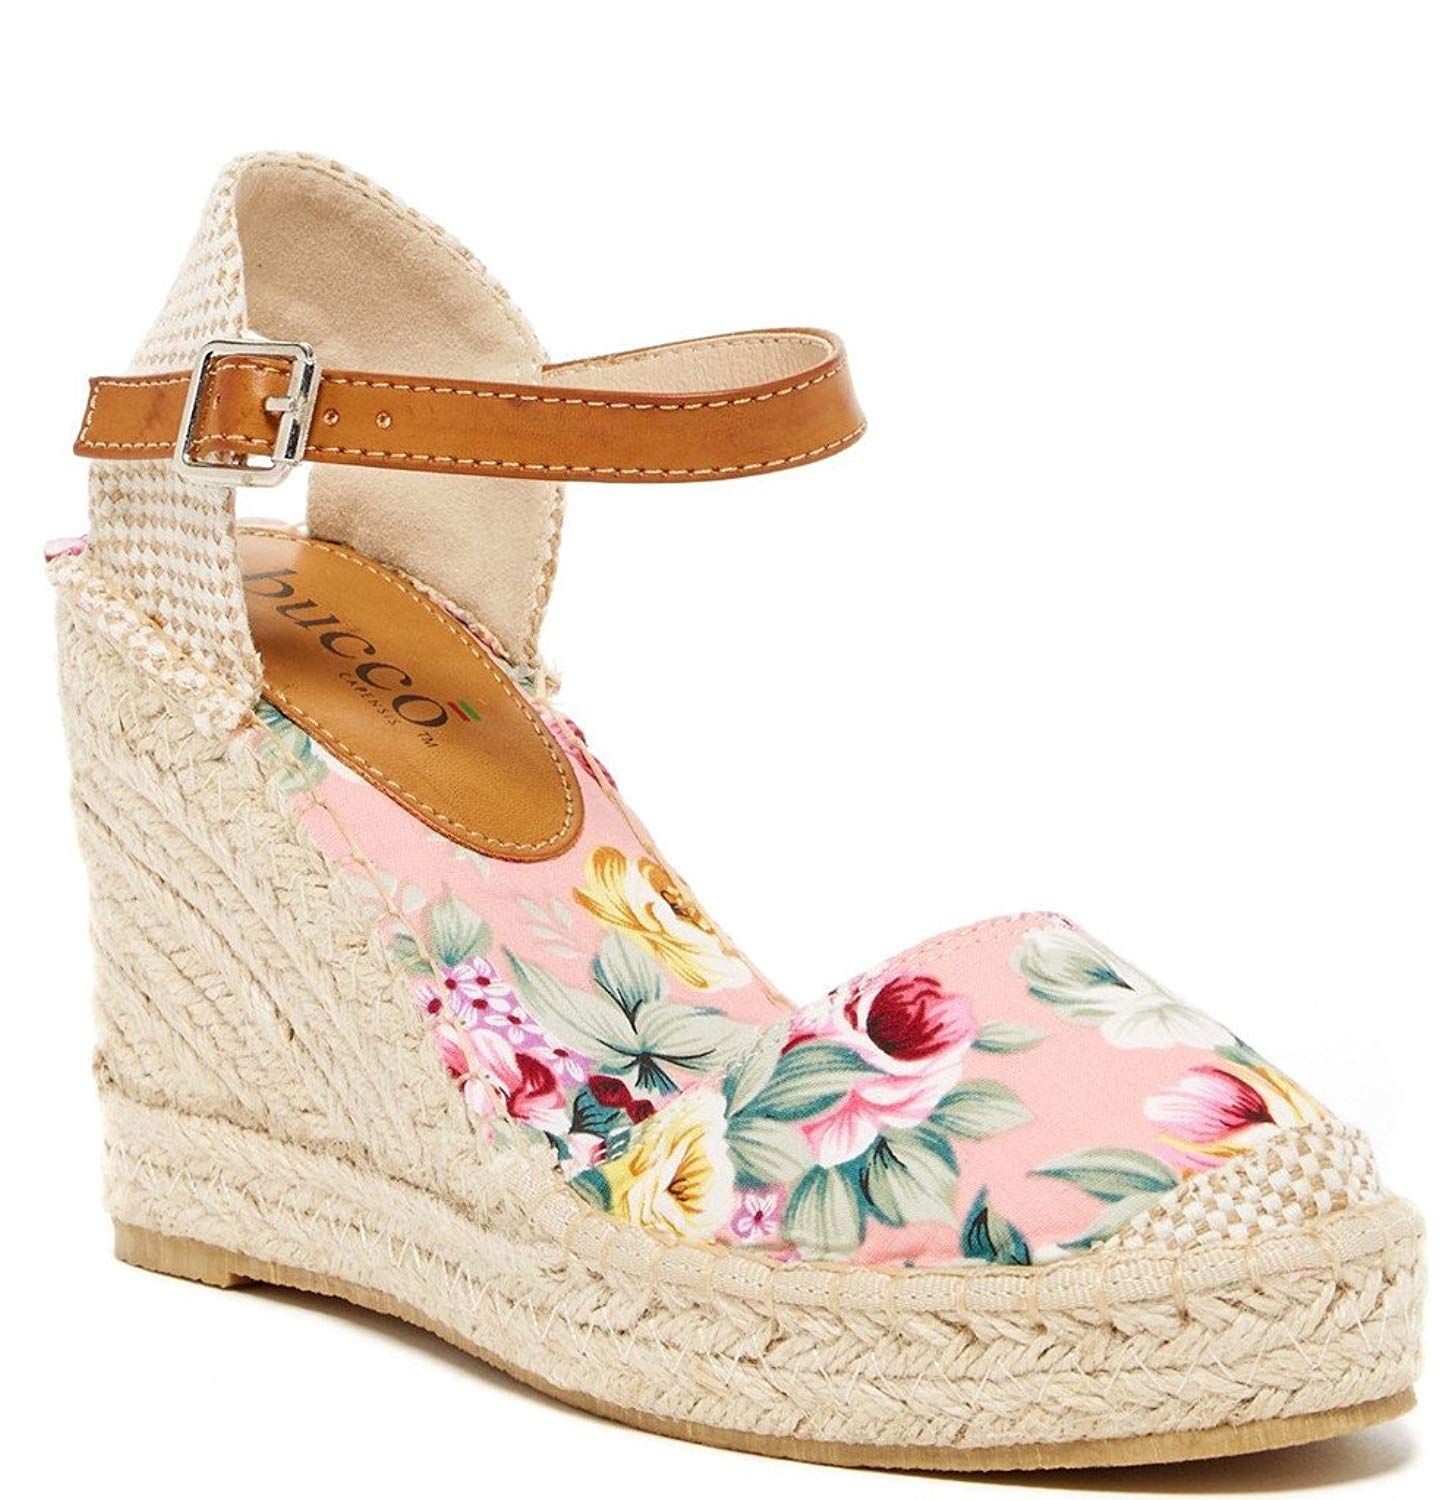 c982a8ecac91 Bucco Flowery Womens Fashion Wedge Sandals. Get out and enjoy the beautiful  weather in these adorable espadrille-inspired Bucco Flowery wedges  featuring ...